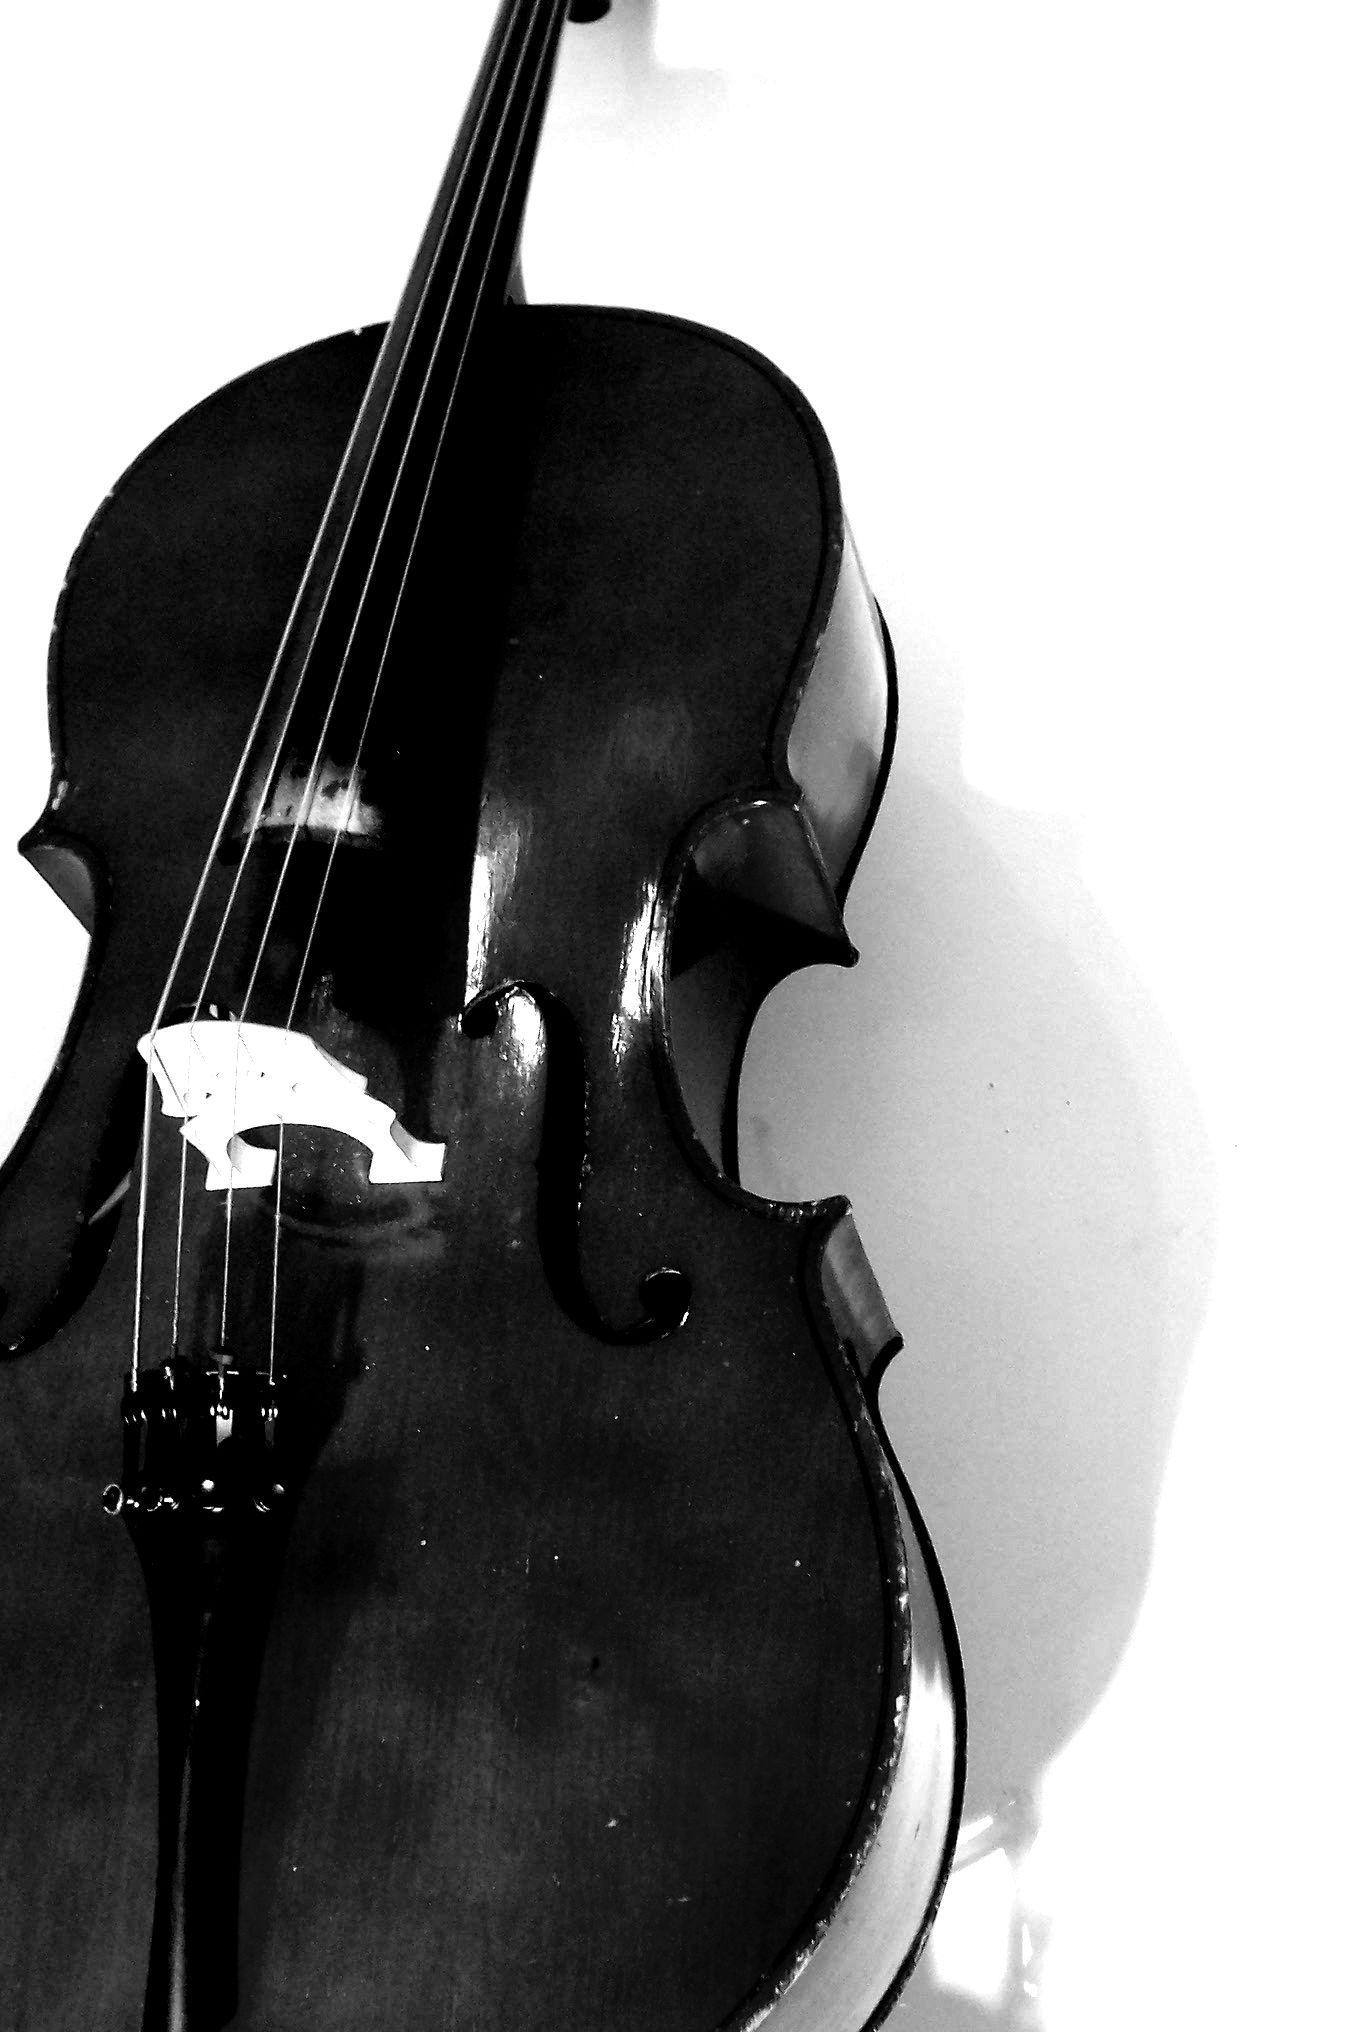 Image For > Black And White Cello Wallpapers